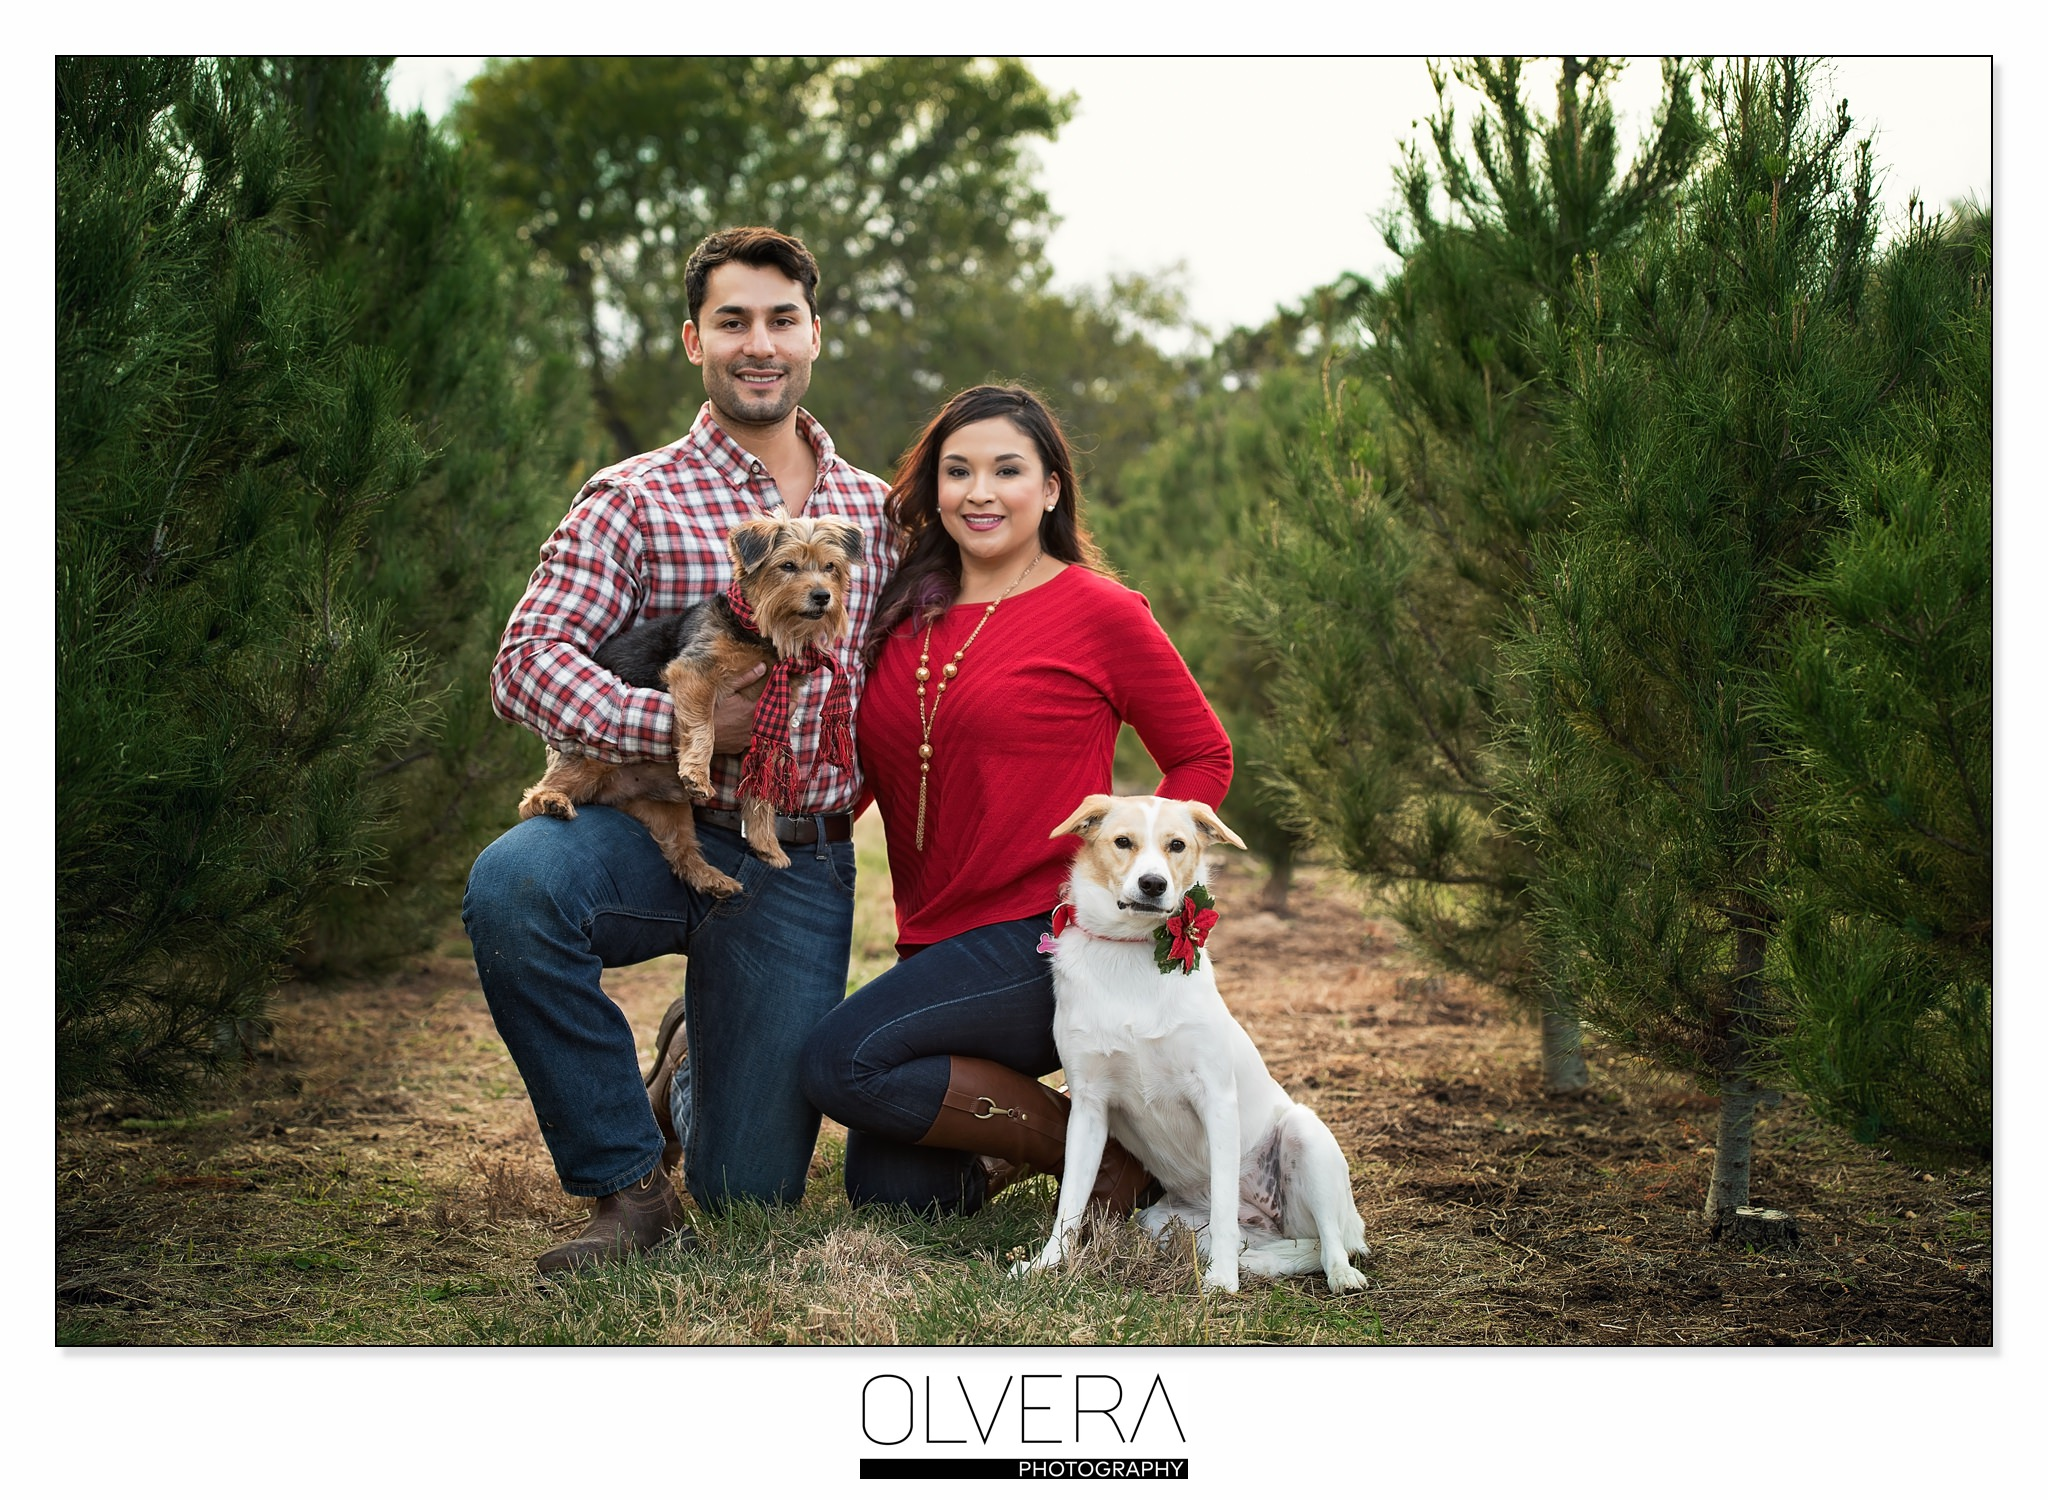 Christmas Tree Farm Photography.Couples Portraits At Christmas Tree Farm Olvera